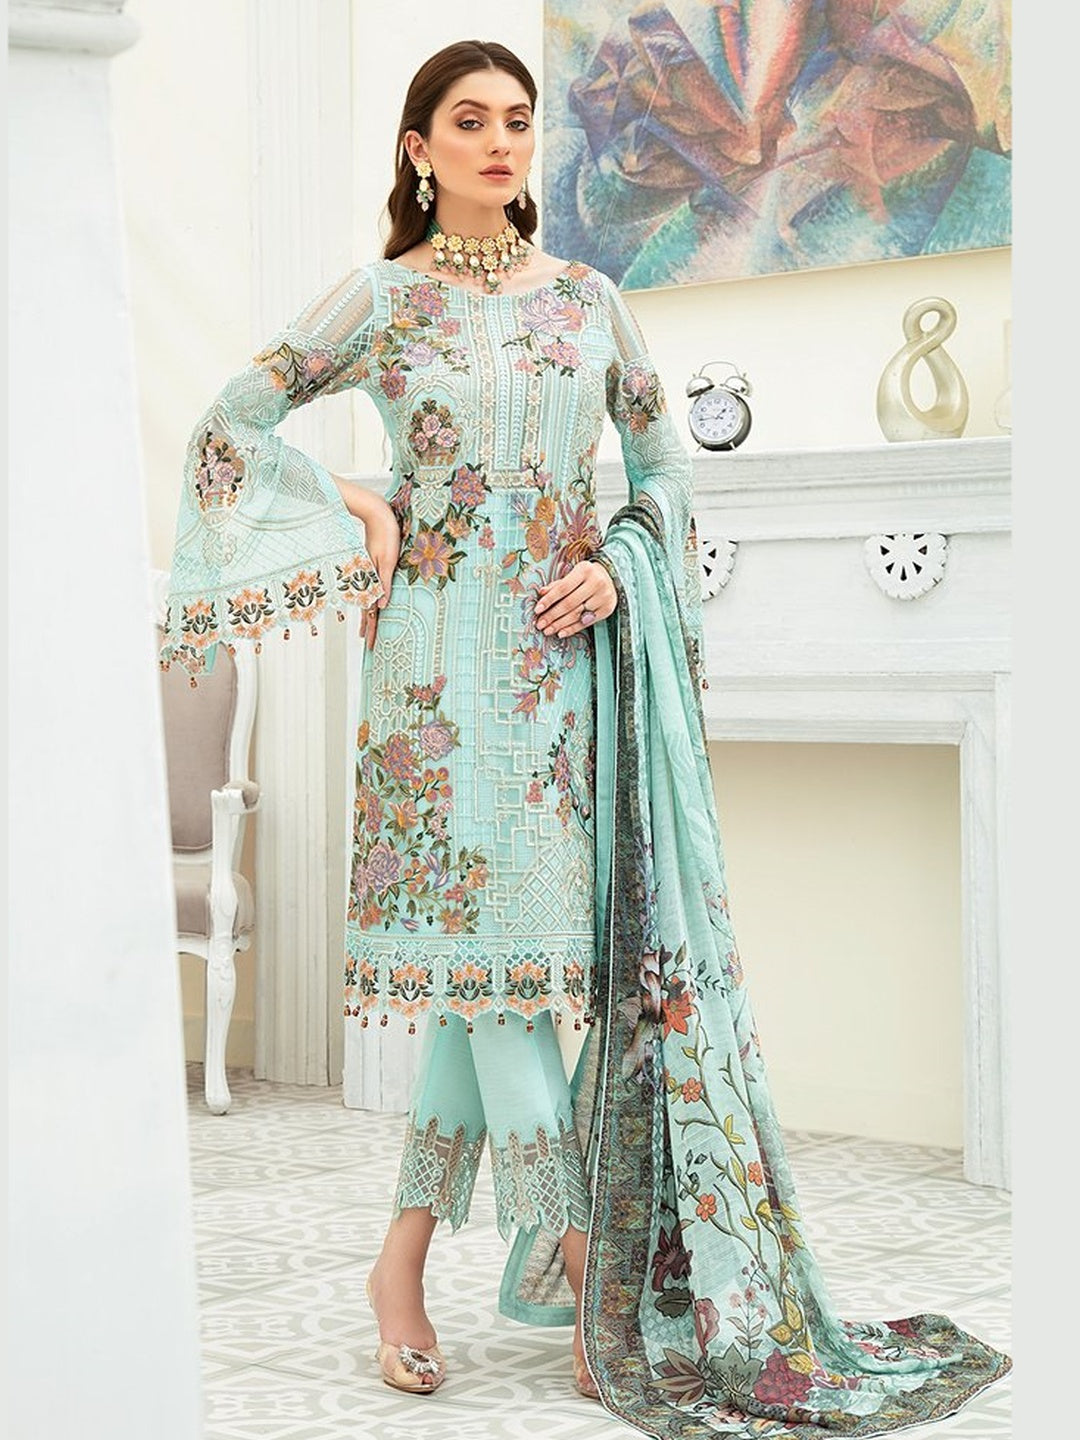 Royal Chiffon - Pakistani Dress